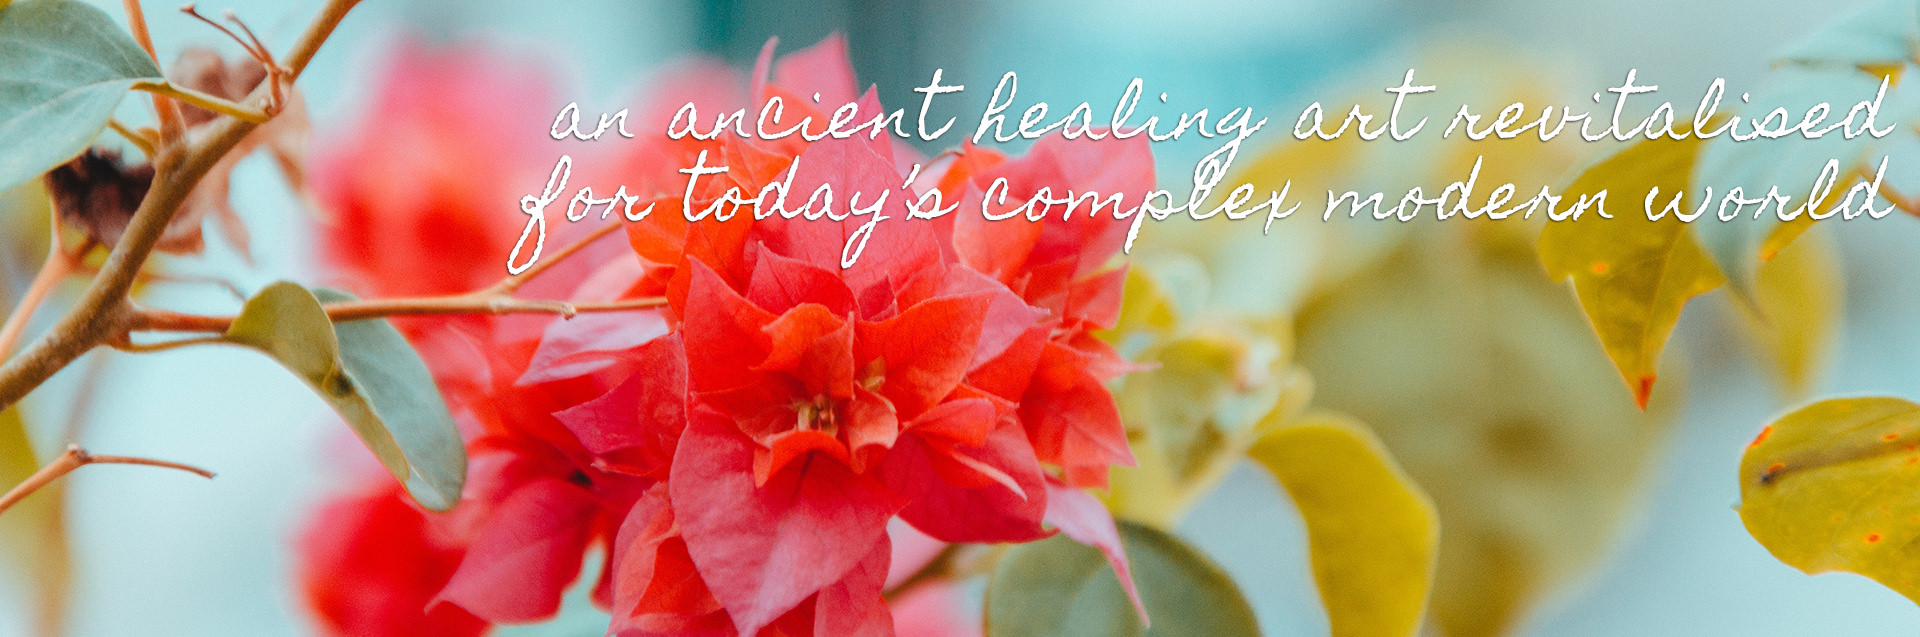 an ancient healing art revitalised for todays complex modern world